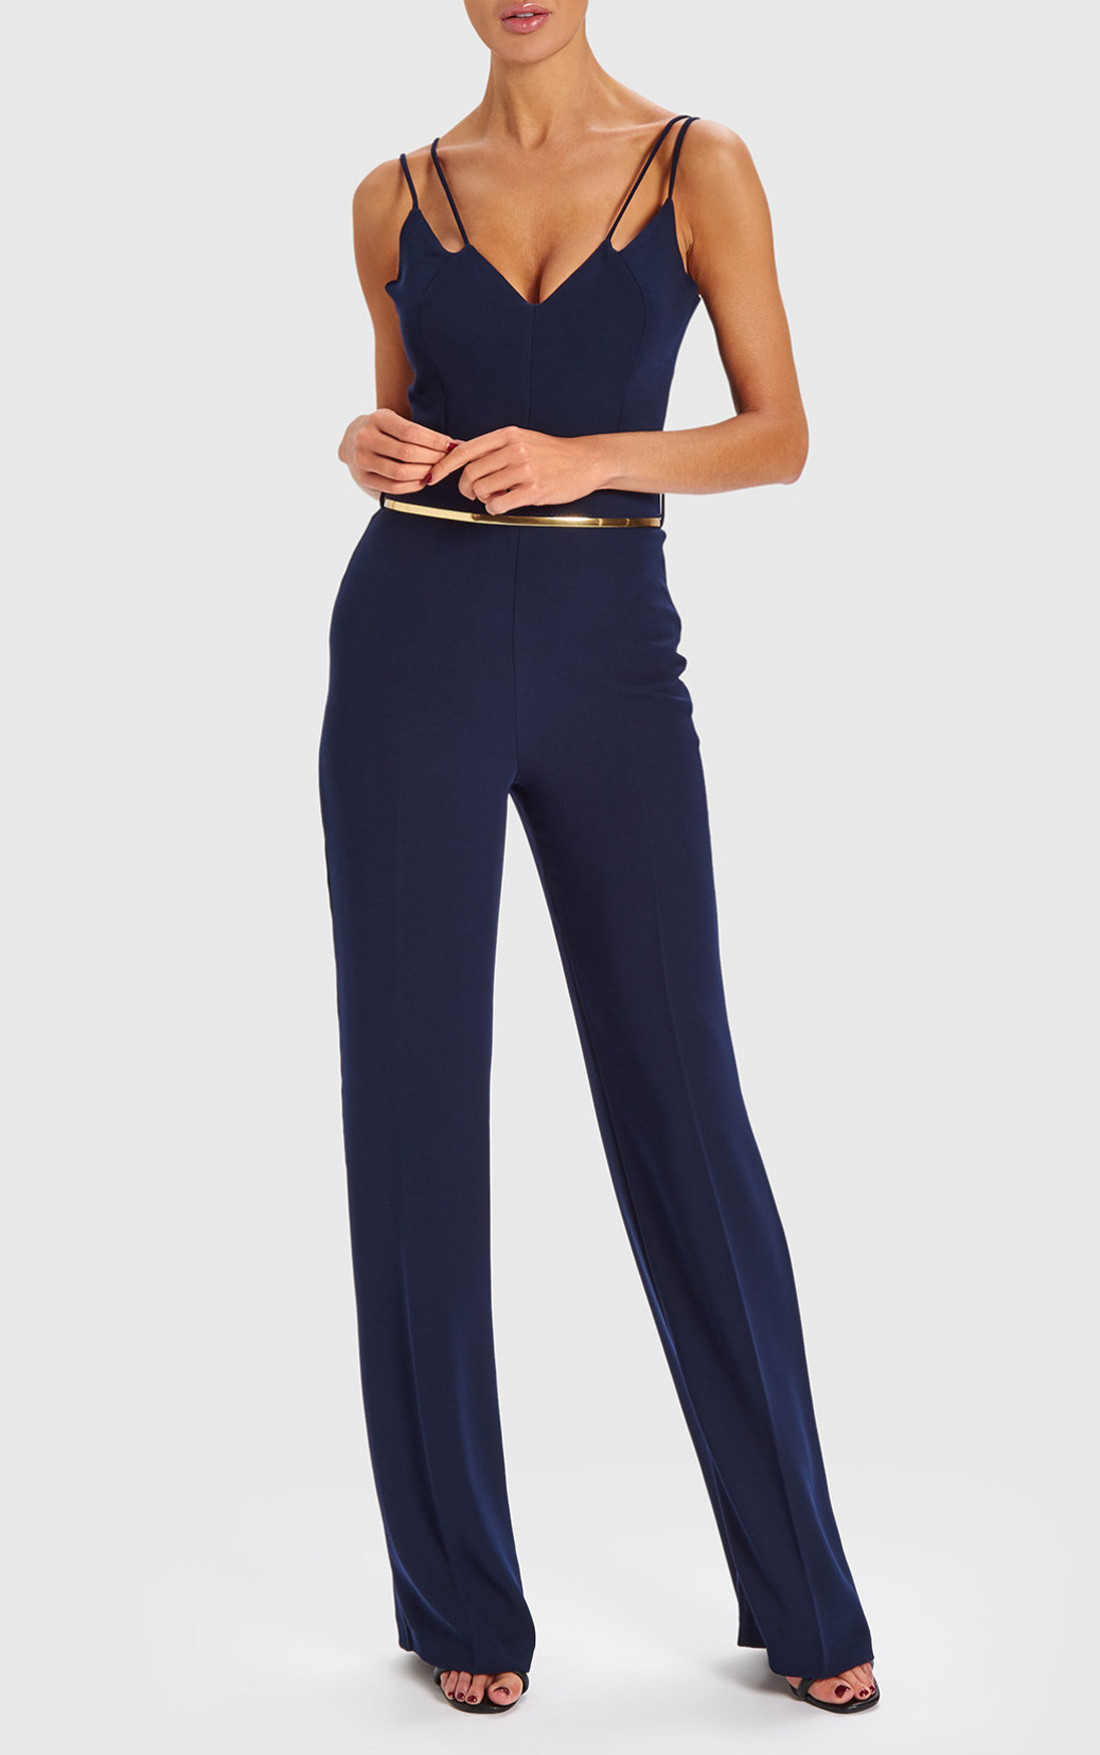 Forever Unique - Brooke Navy Double Strap Jumpsuit With Gold Waistband (AB8904)